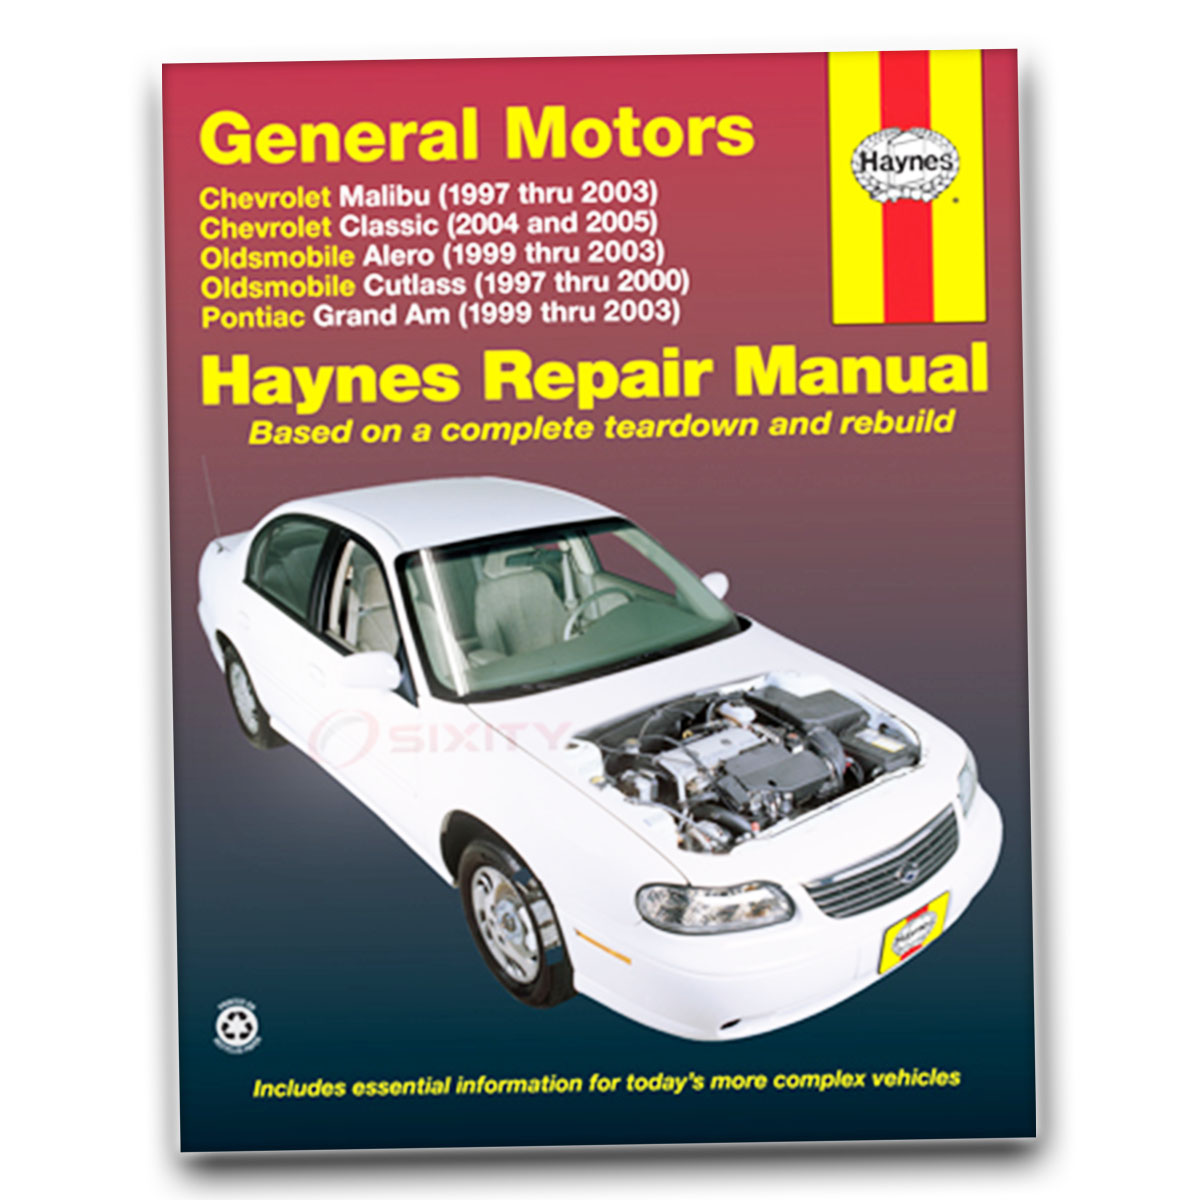 pontiac grand am haynes repair manual se2 gt gt1 se1 shop service rh ebay com 2000 pontiac grand am gt service manual 2000 pontiac grand am gt service manual